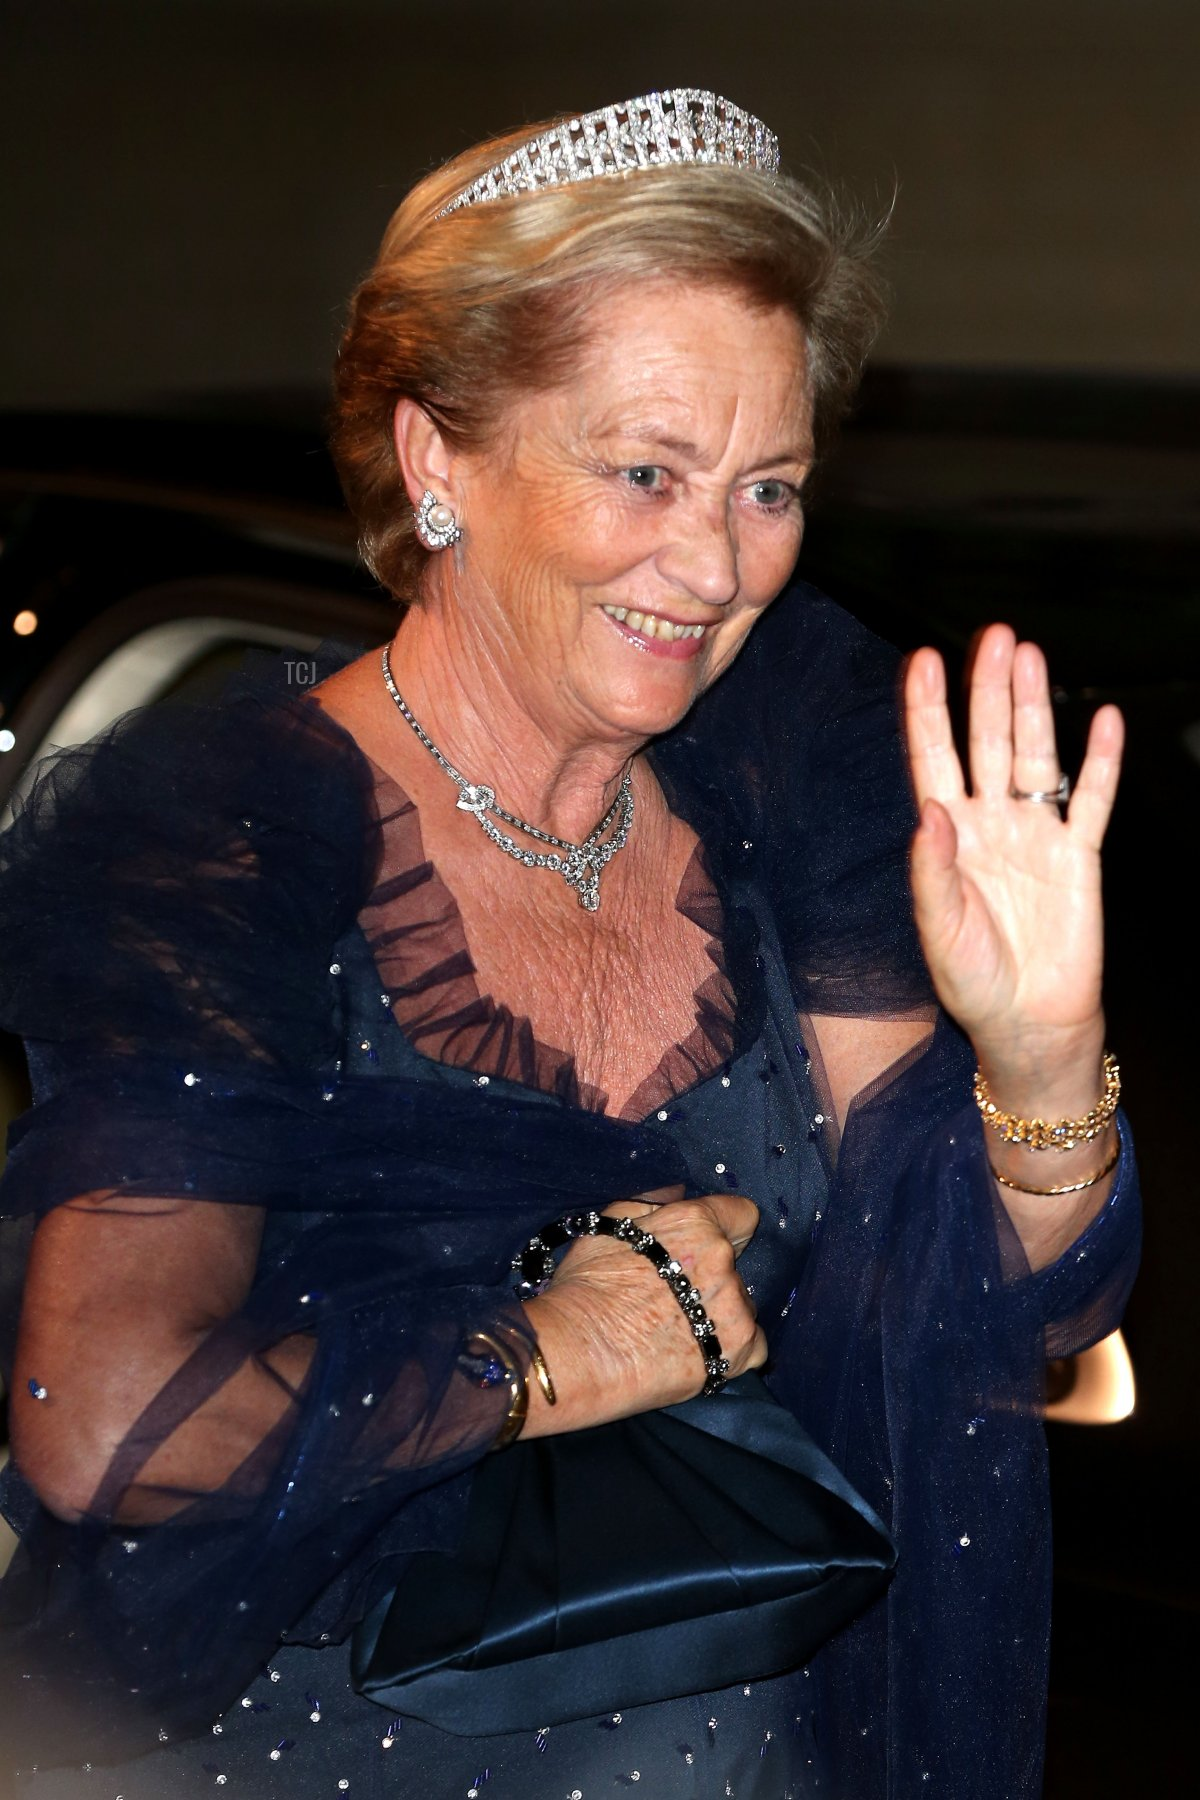 Queen Paola of Belgium attends the Gala dinner for the wedding of Prince Guillaume Of Luxembourg and Stephanie de Lannoy at the Grand-ducal Palace on October 19, 2012 in Luxembourg, Luxembourg